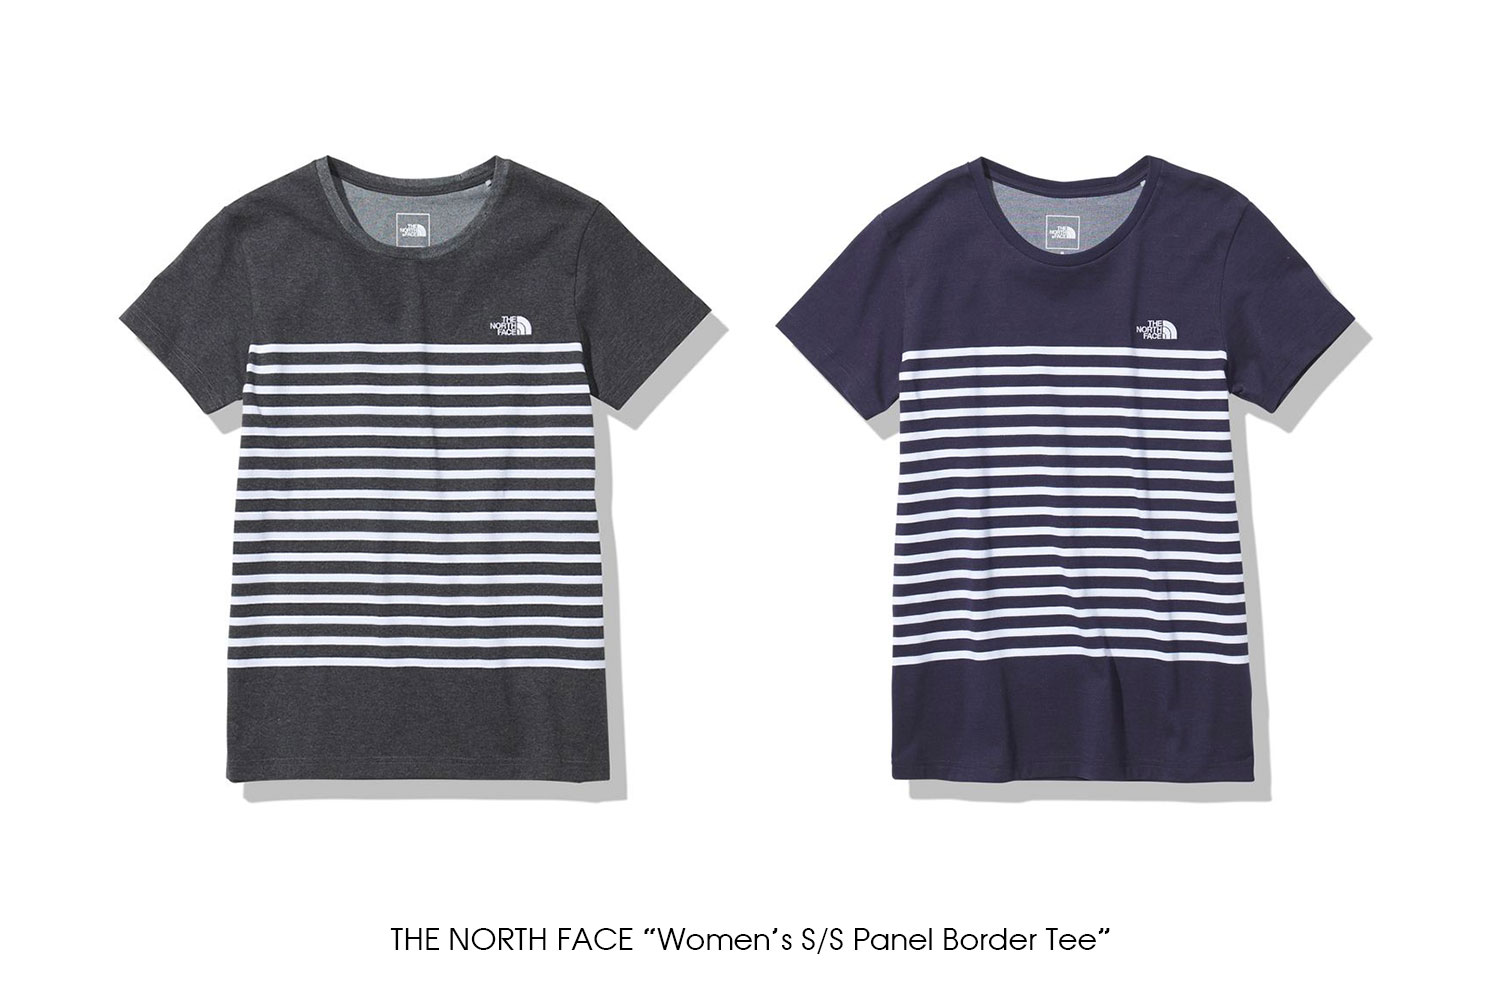 """THE NORTH FACE """"Women's S/S Panel Border Tee"""""""